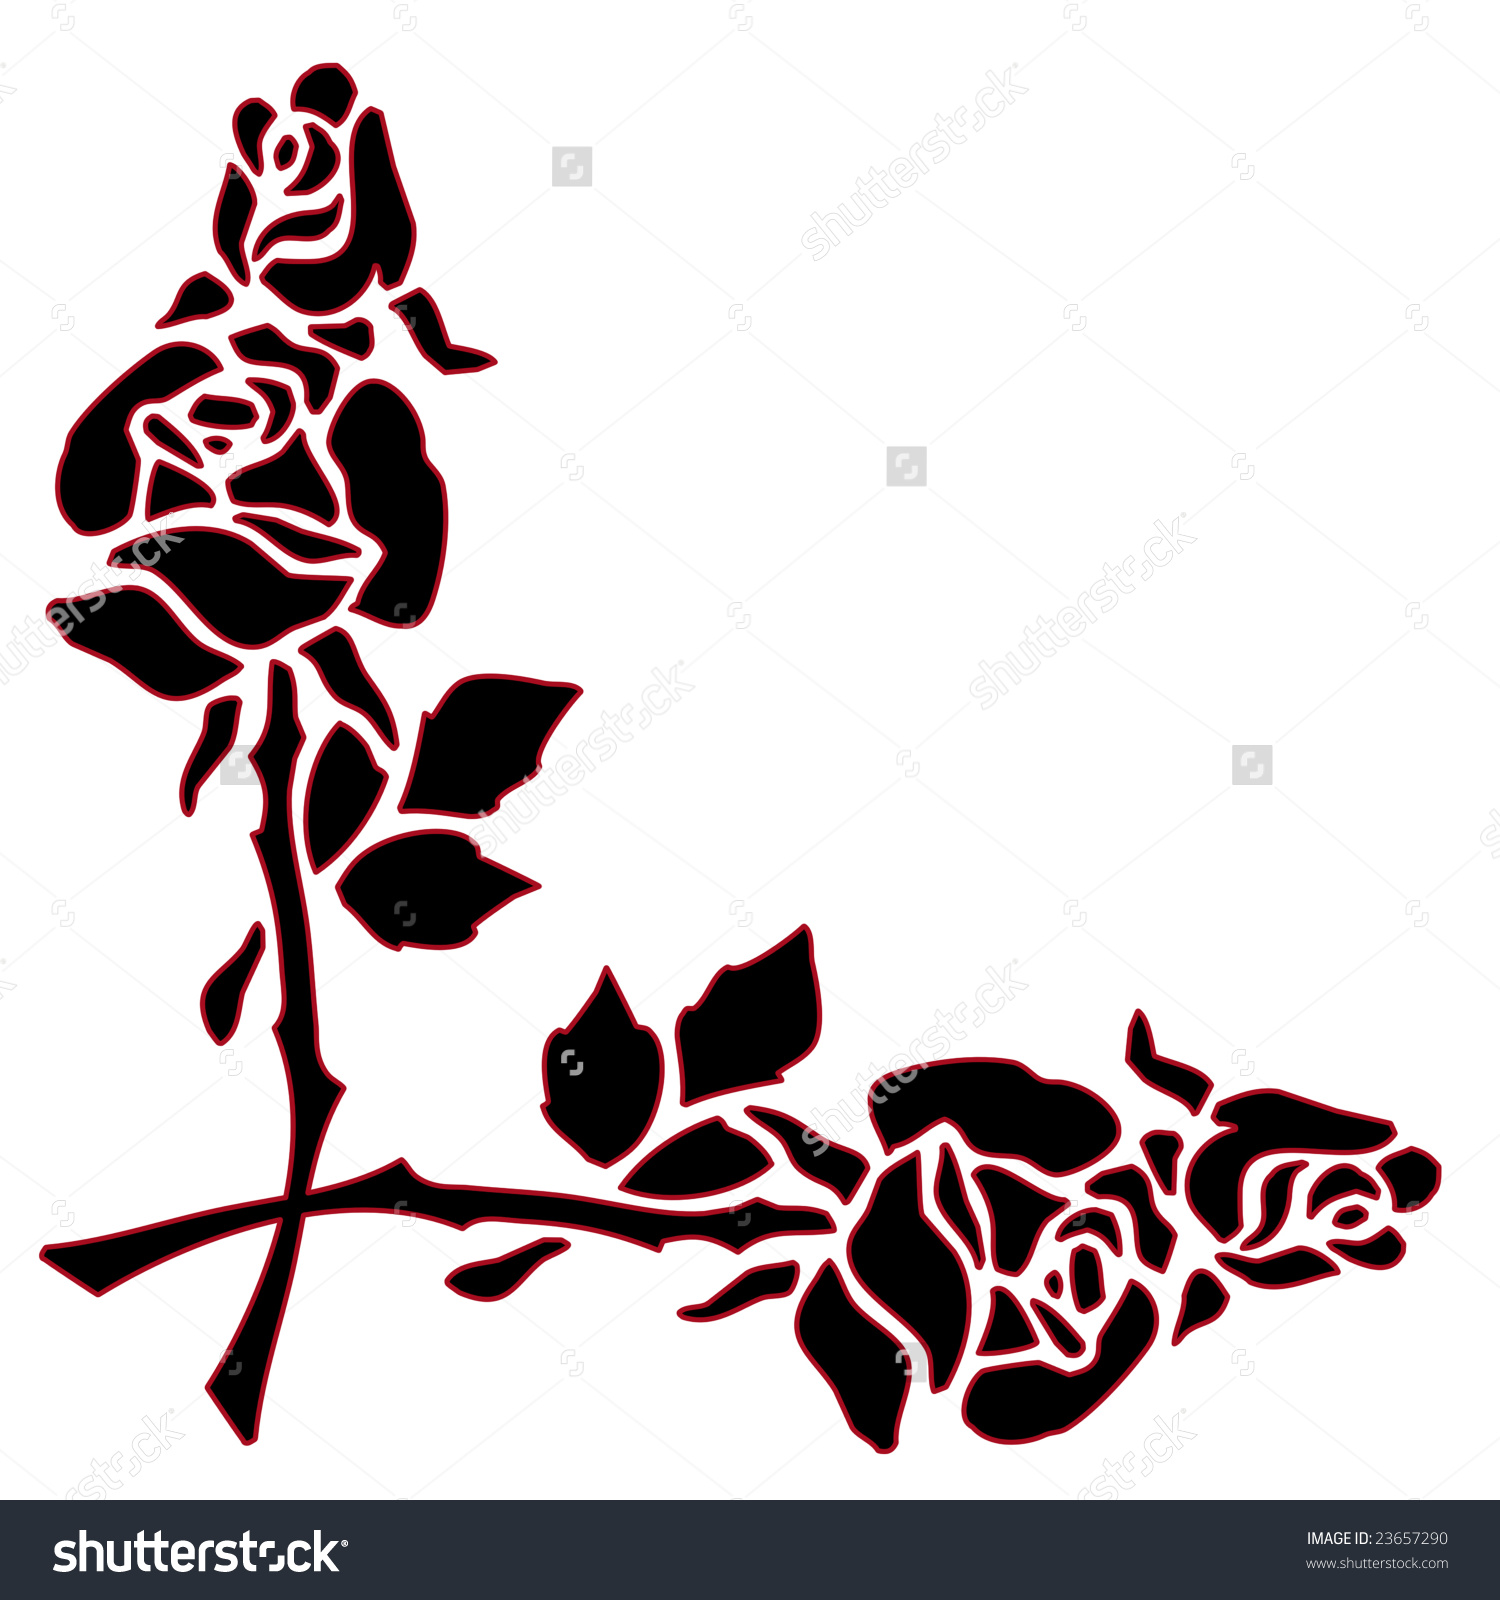 1500x1600 Stock Images Similar To Id 35545462 Rose Stencil Black Silhouette